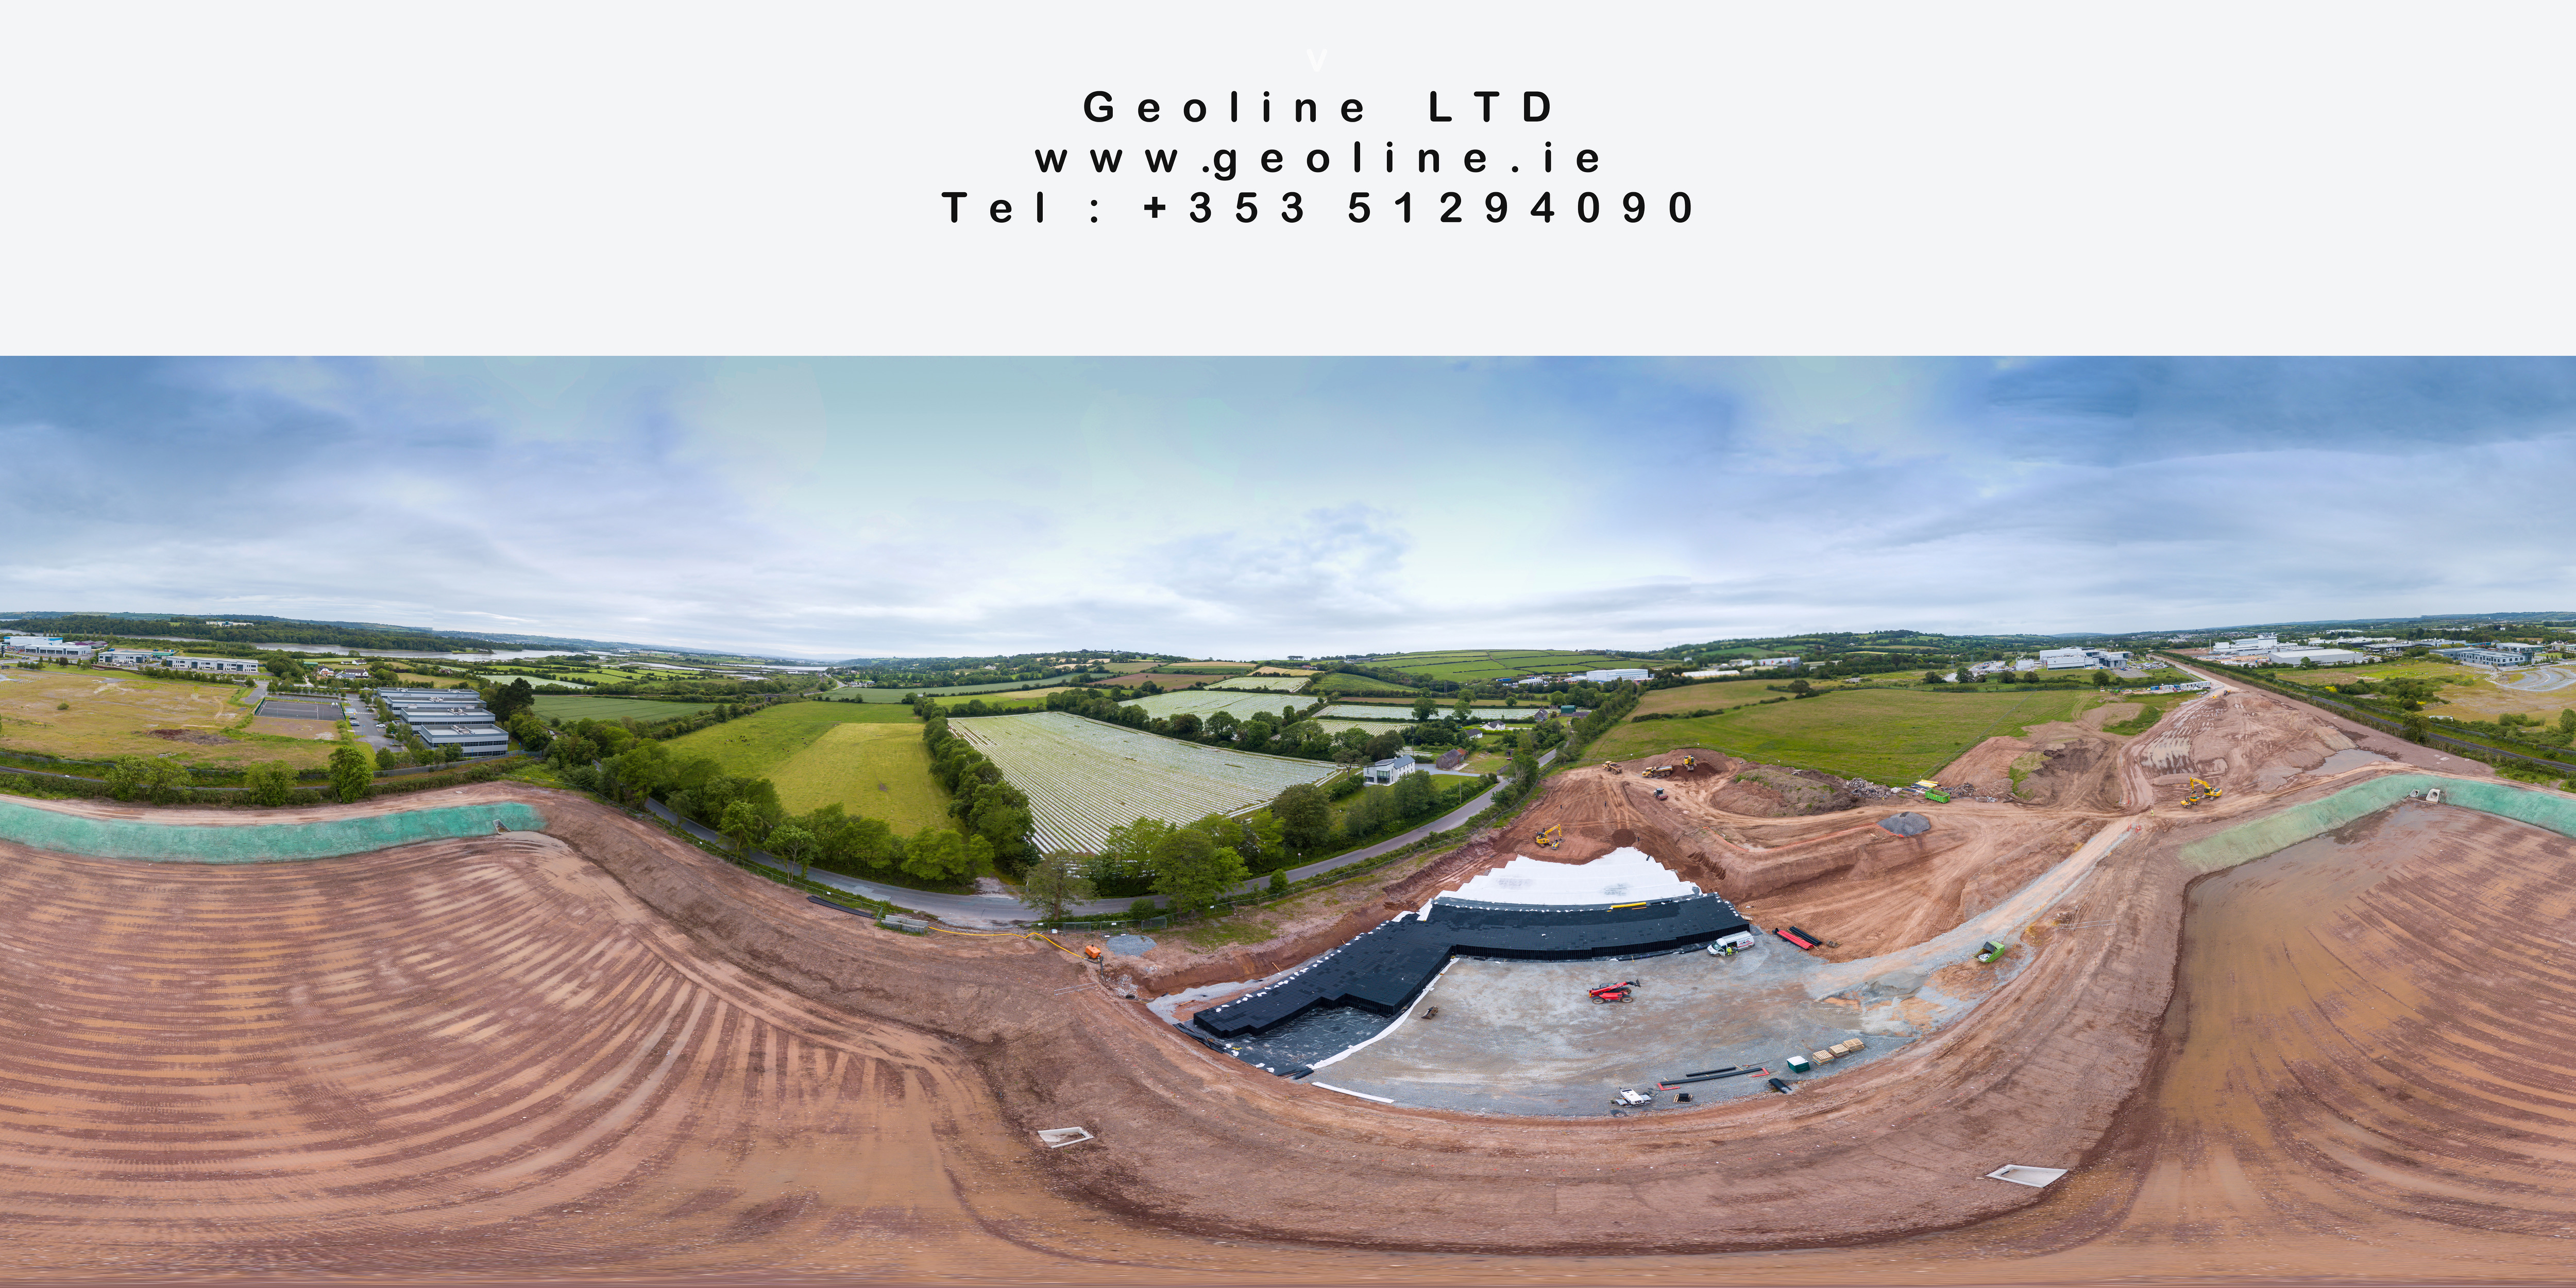 Carrigtwohill Attenuation Tanks And Pond Aerial Shot